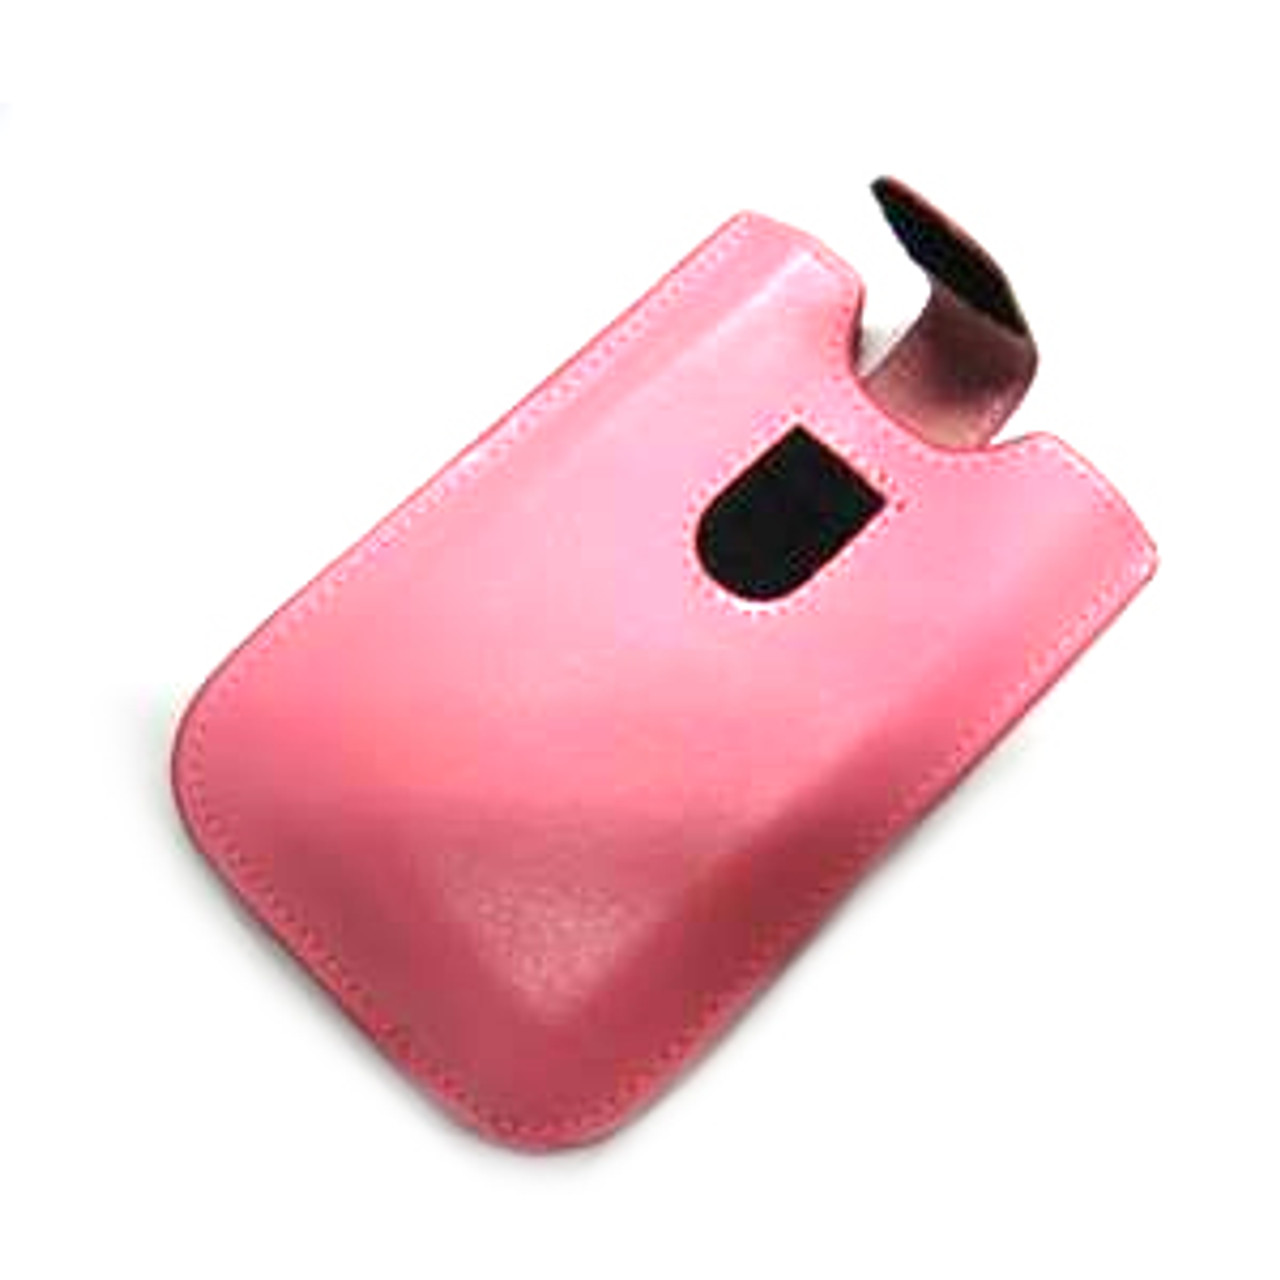 Product image for Pocket Case with Velcro Strap for iPhone 3G   CX Computer Superstore